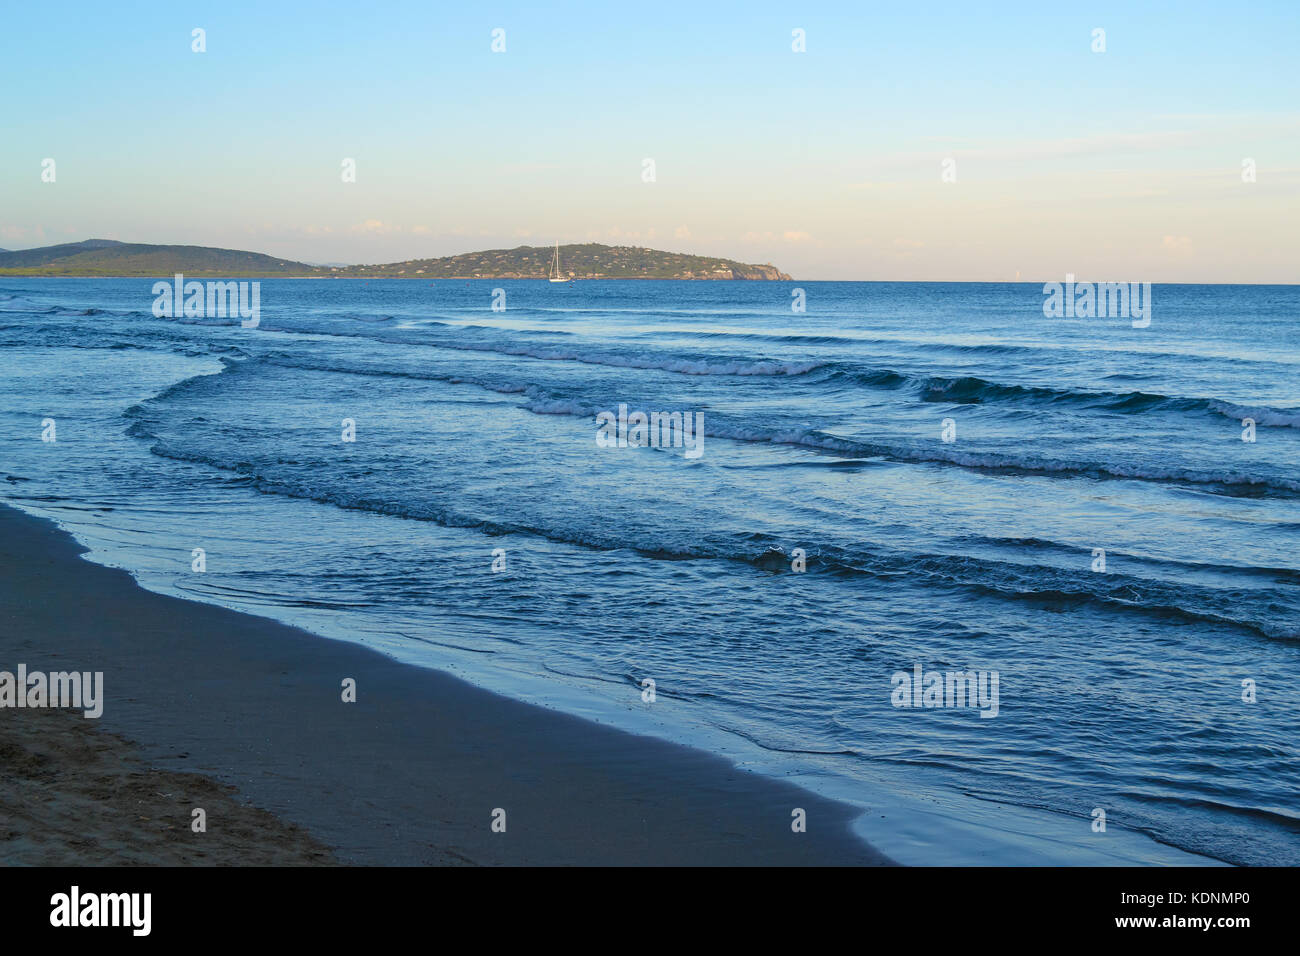 day of peace and relaxation on the beach of Porto Ercole watching the sea, Monte Argentario, Italy - Stock Image